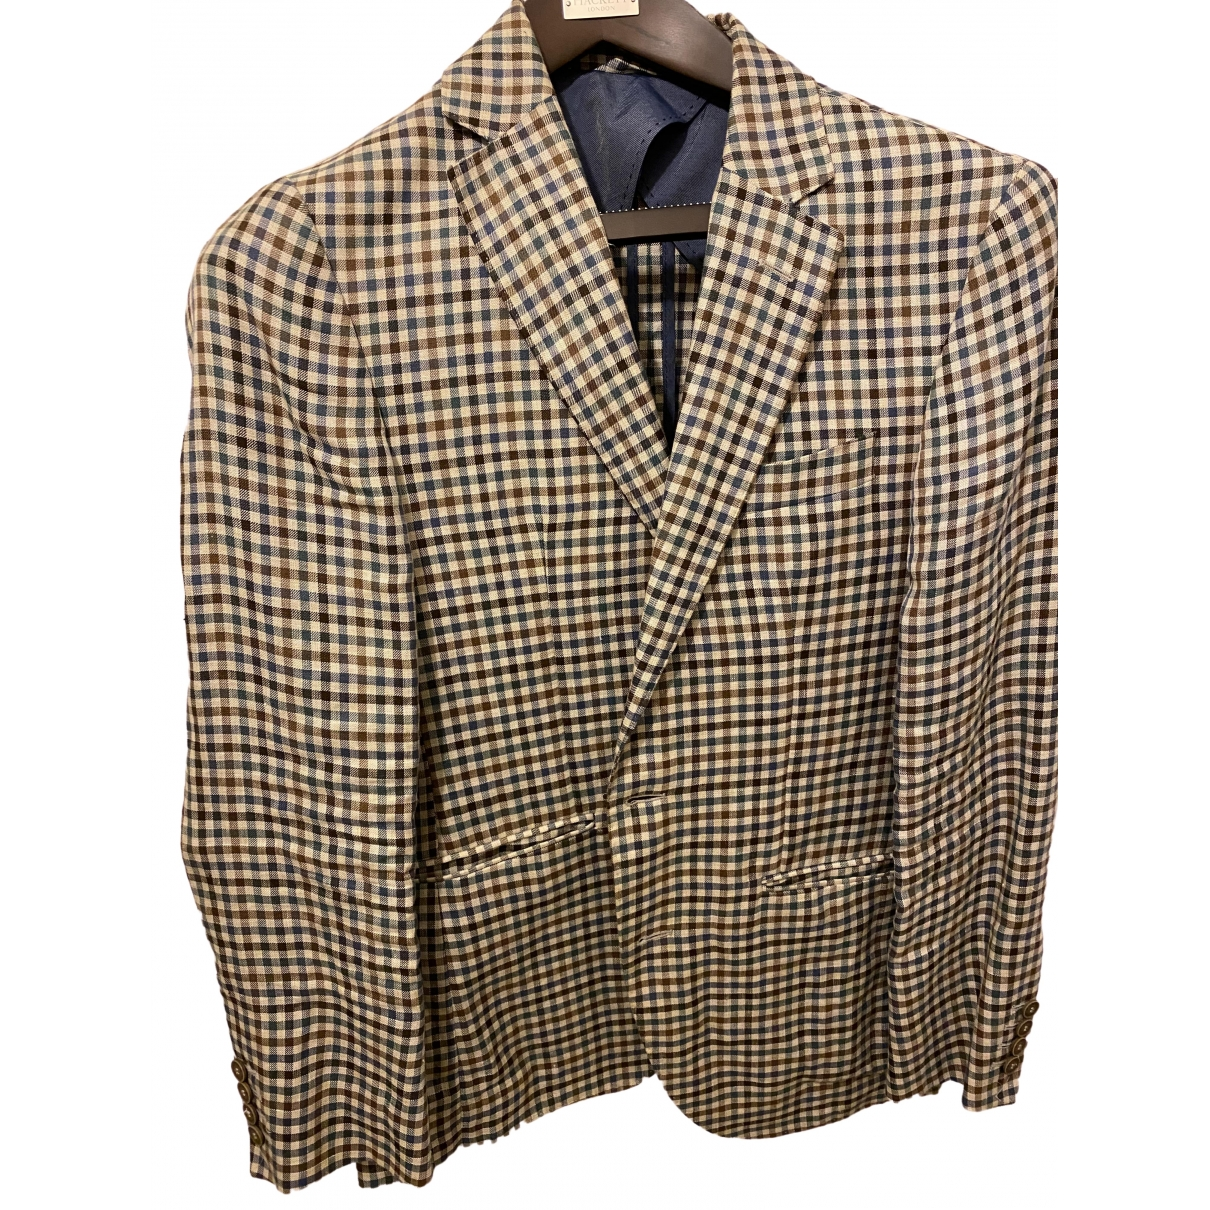 Hackett London \N Multicolour Linen jacket  for Men 38 UK - US